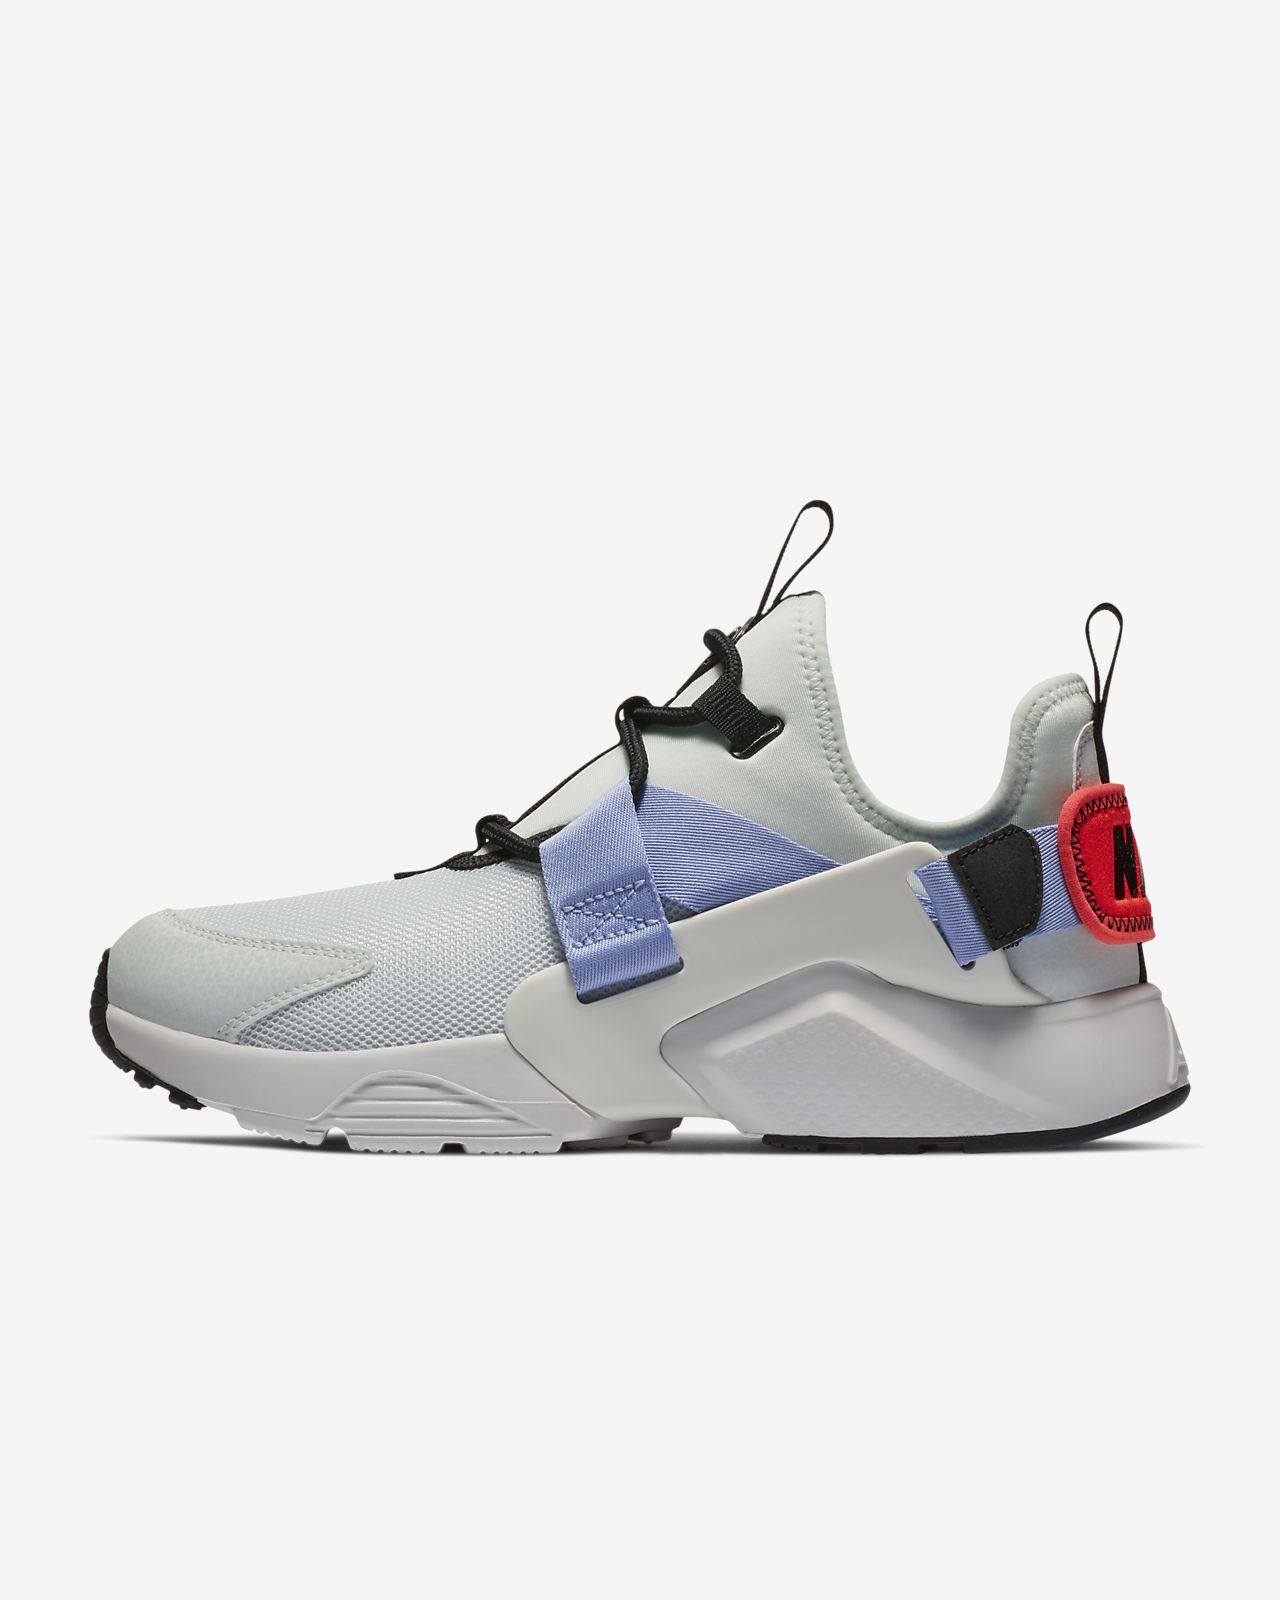 8125162411f08 Nike Air Huarache City Low Women s Shoe. Nike.com